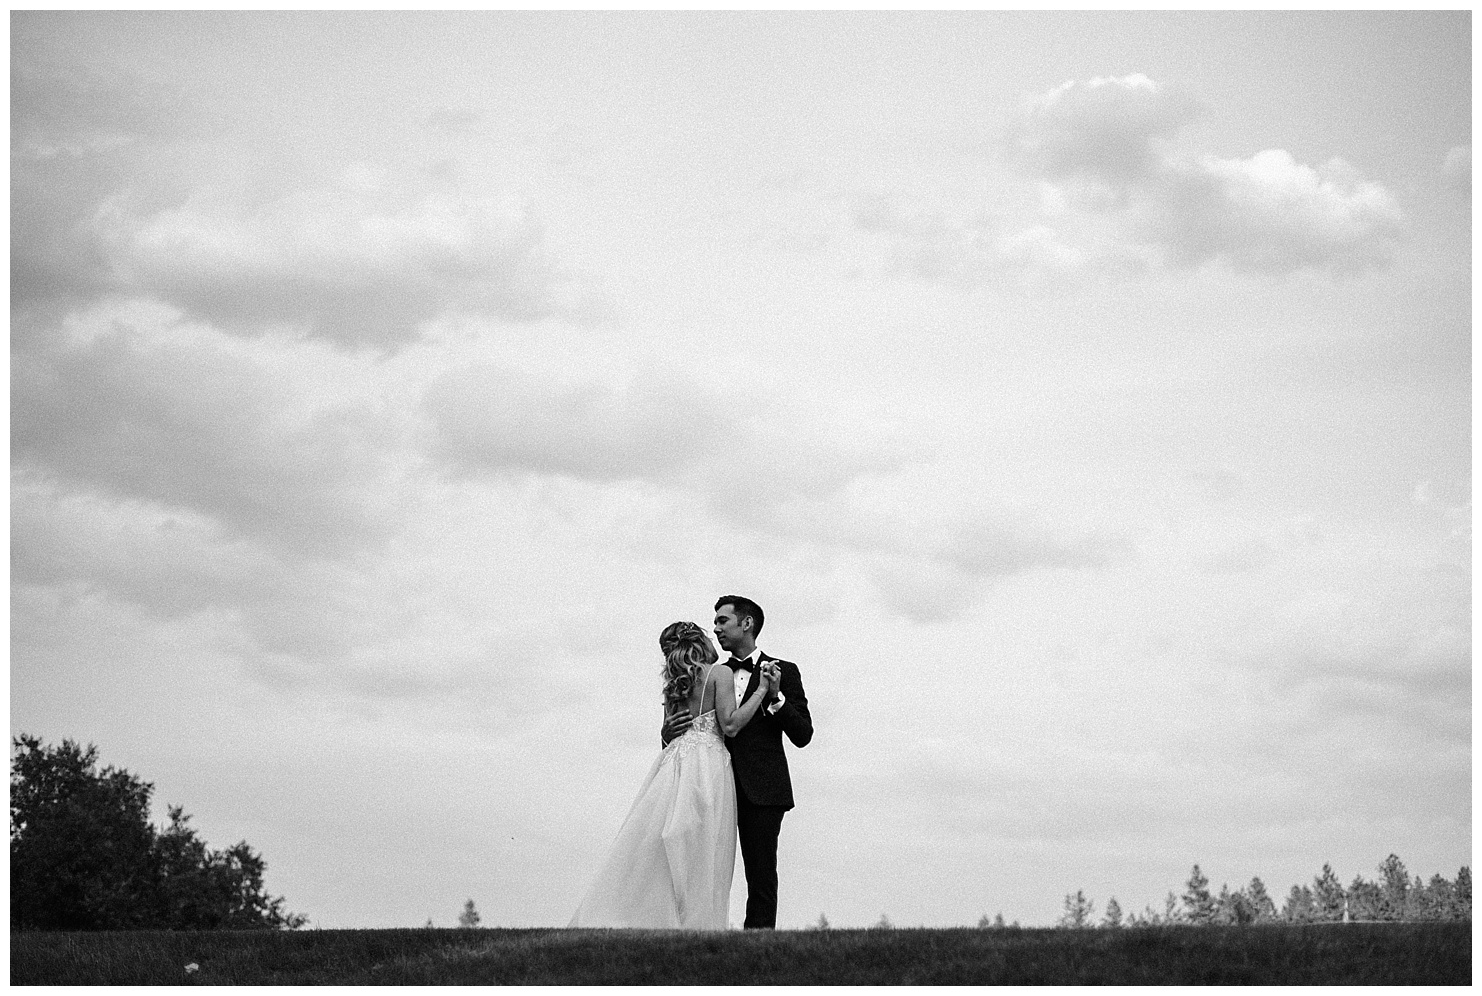 Black and white photo of a bride & groom dancing at sunset by Forthright Photo